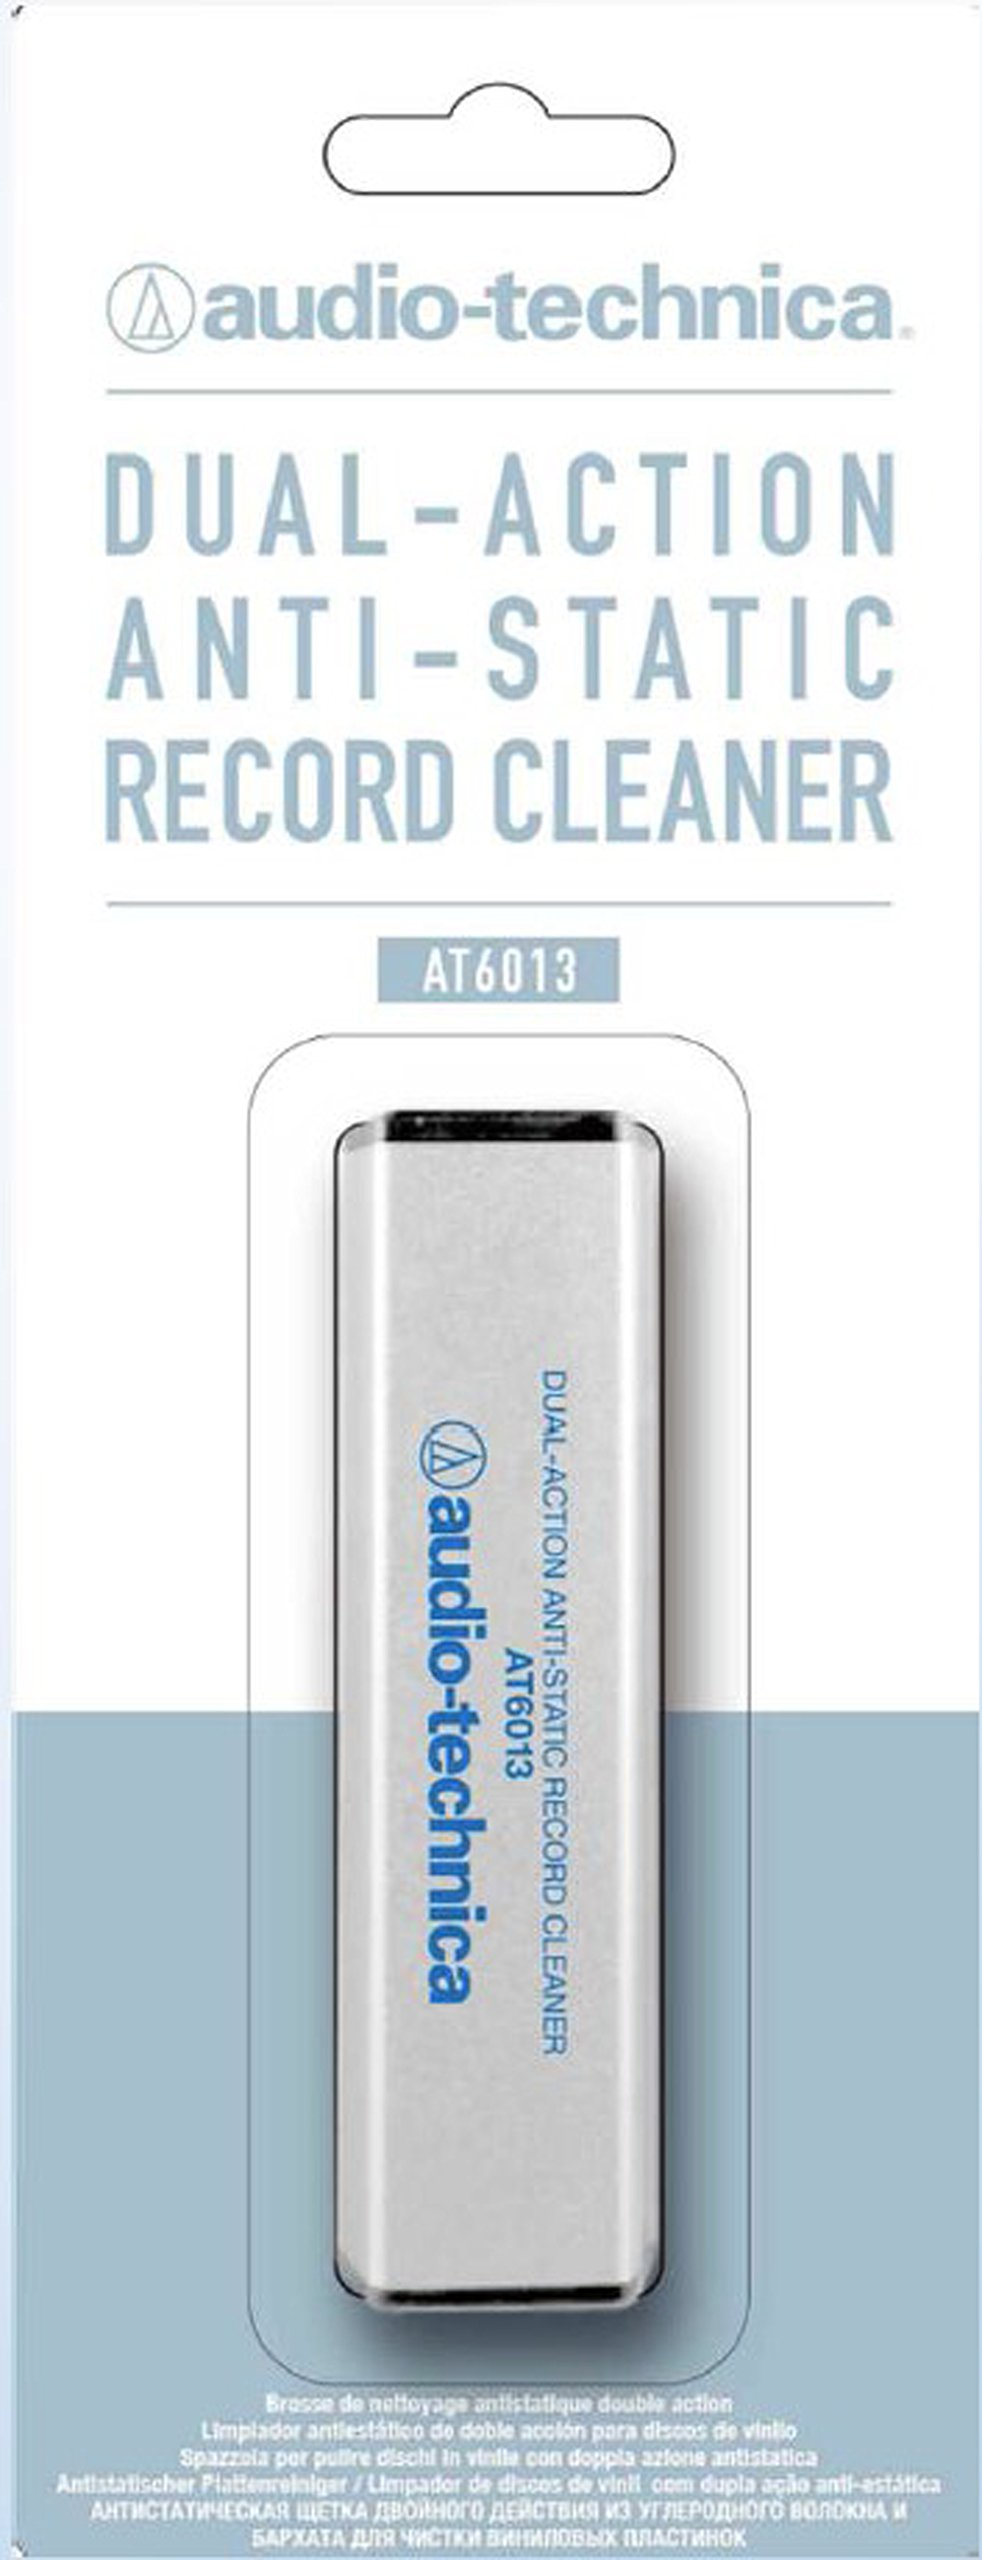 Audio-Technica AT6013 Dual-Action Anti-Static Record Cleaner